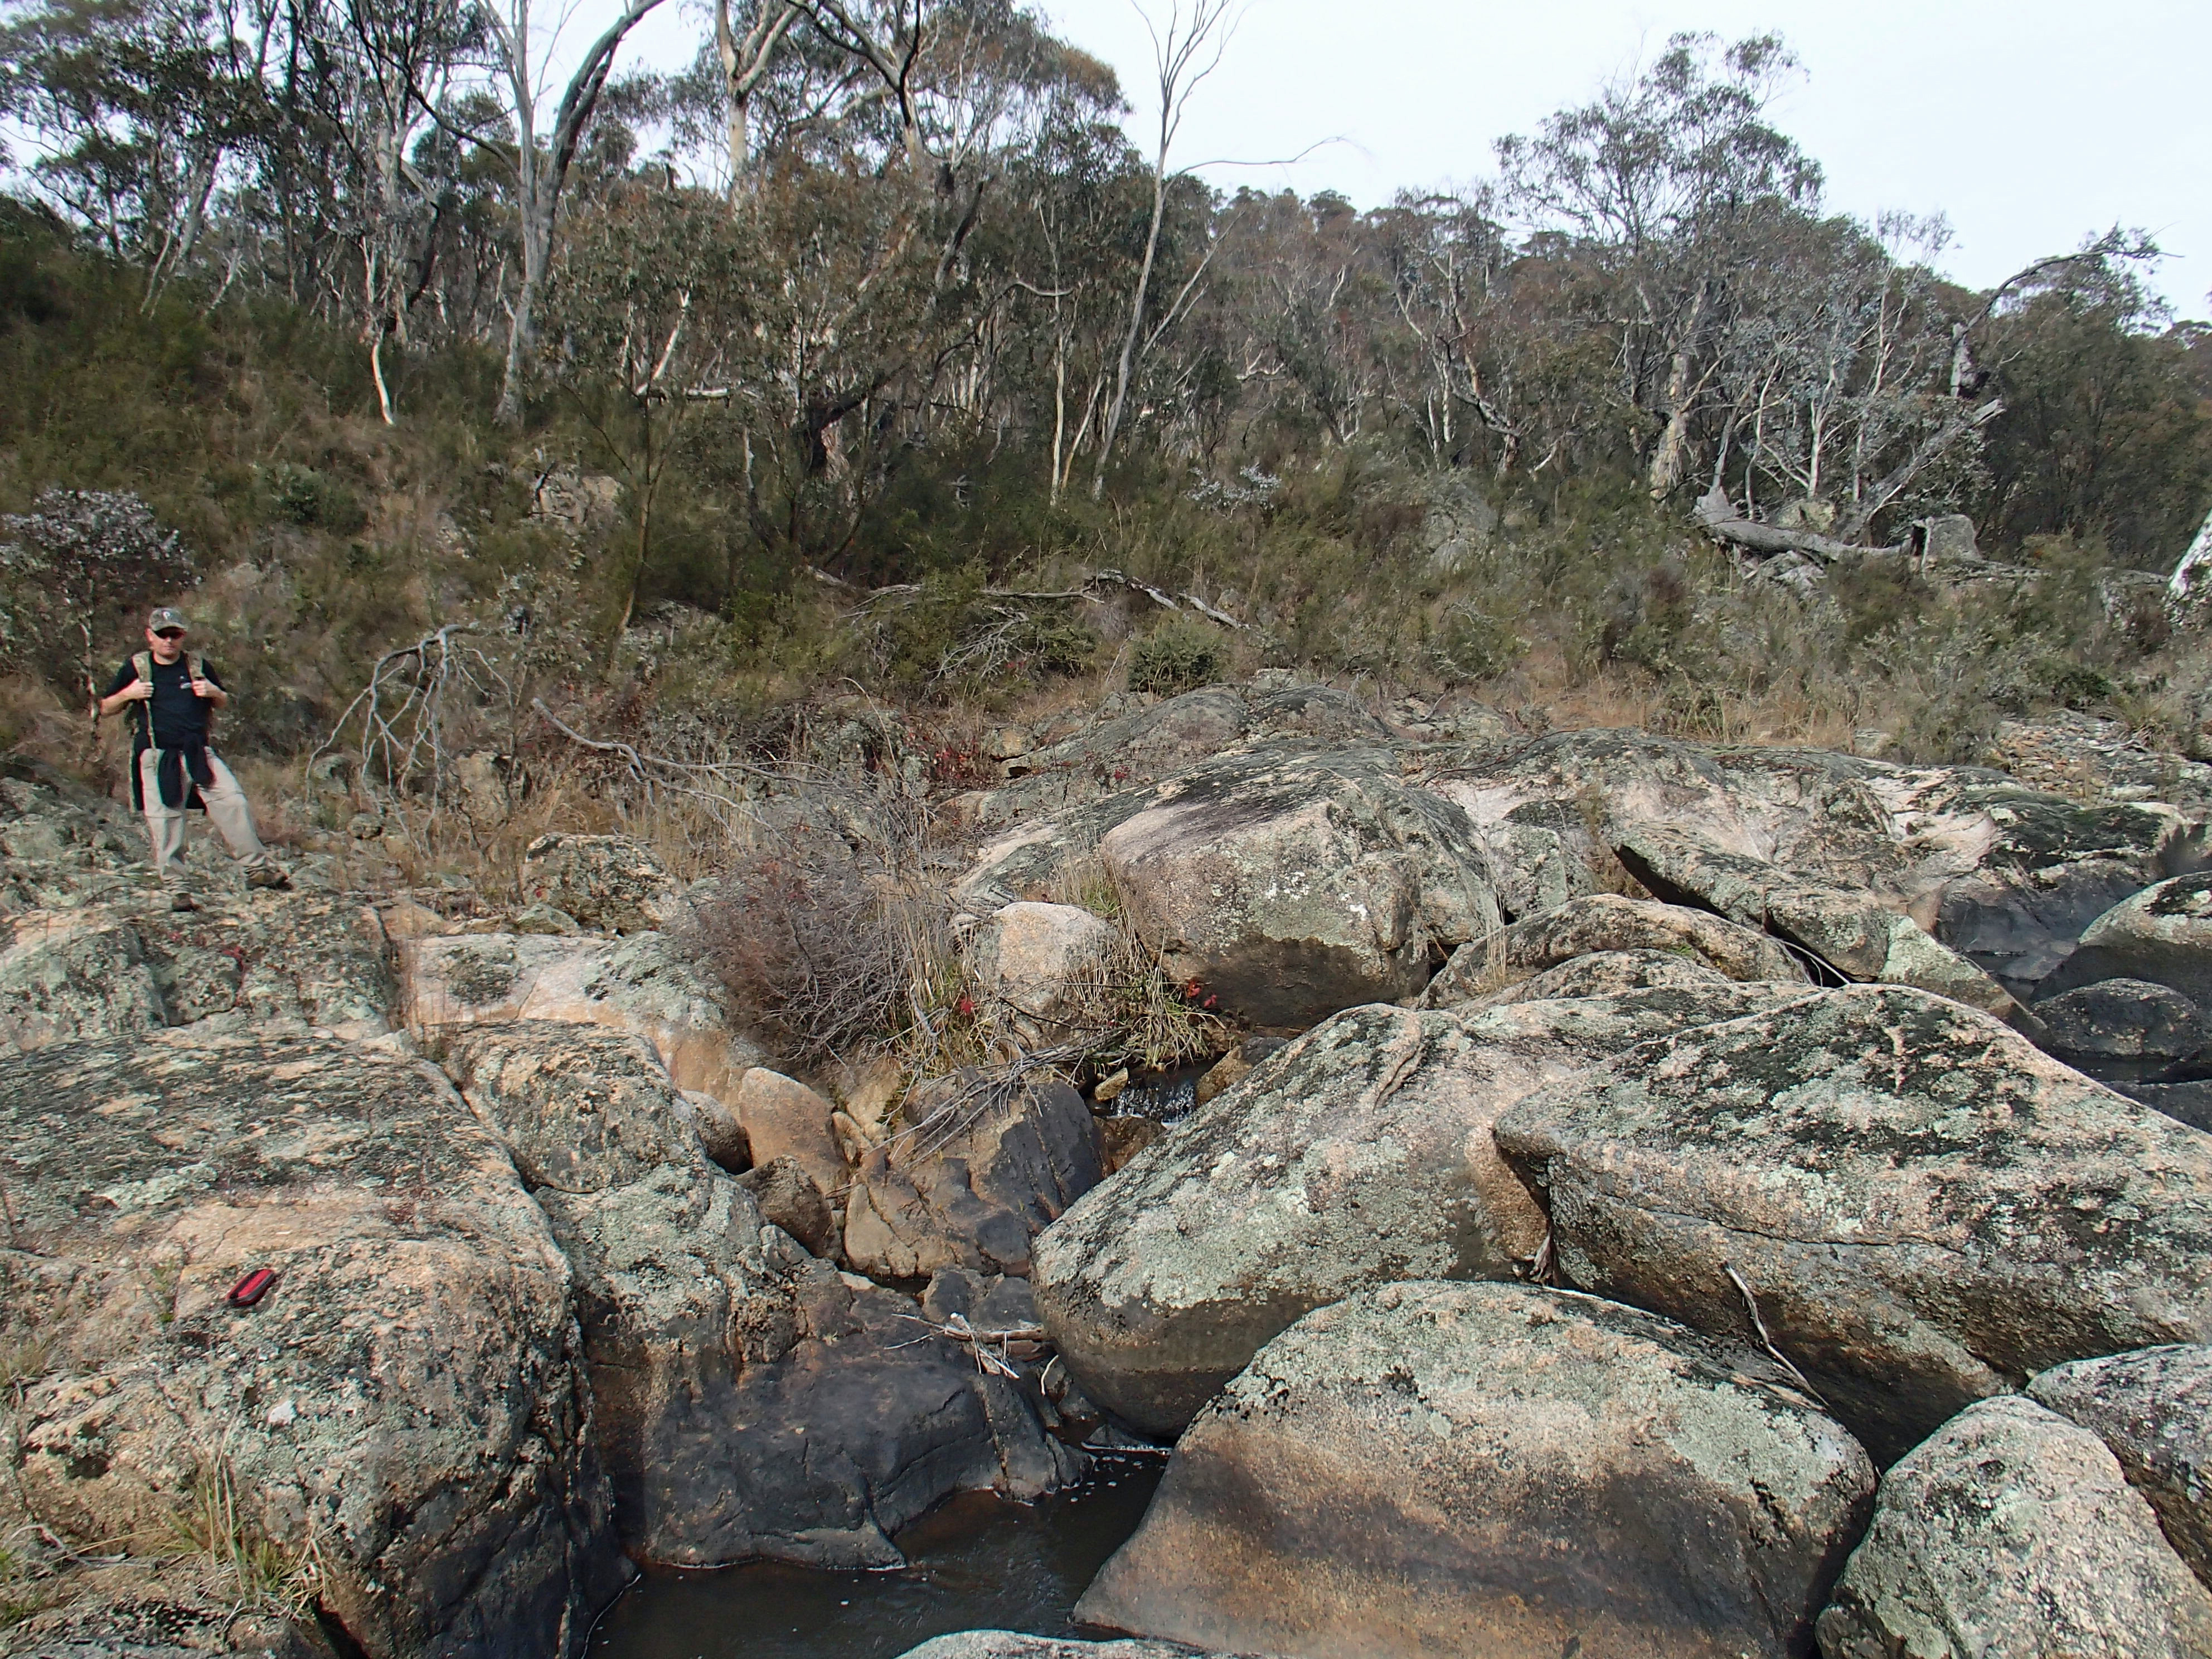 Spotted-tailed Quolls use rock slabs like these as latrine sites